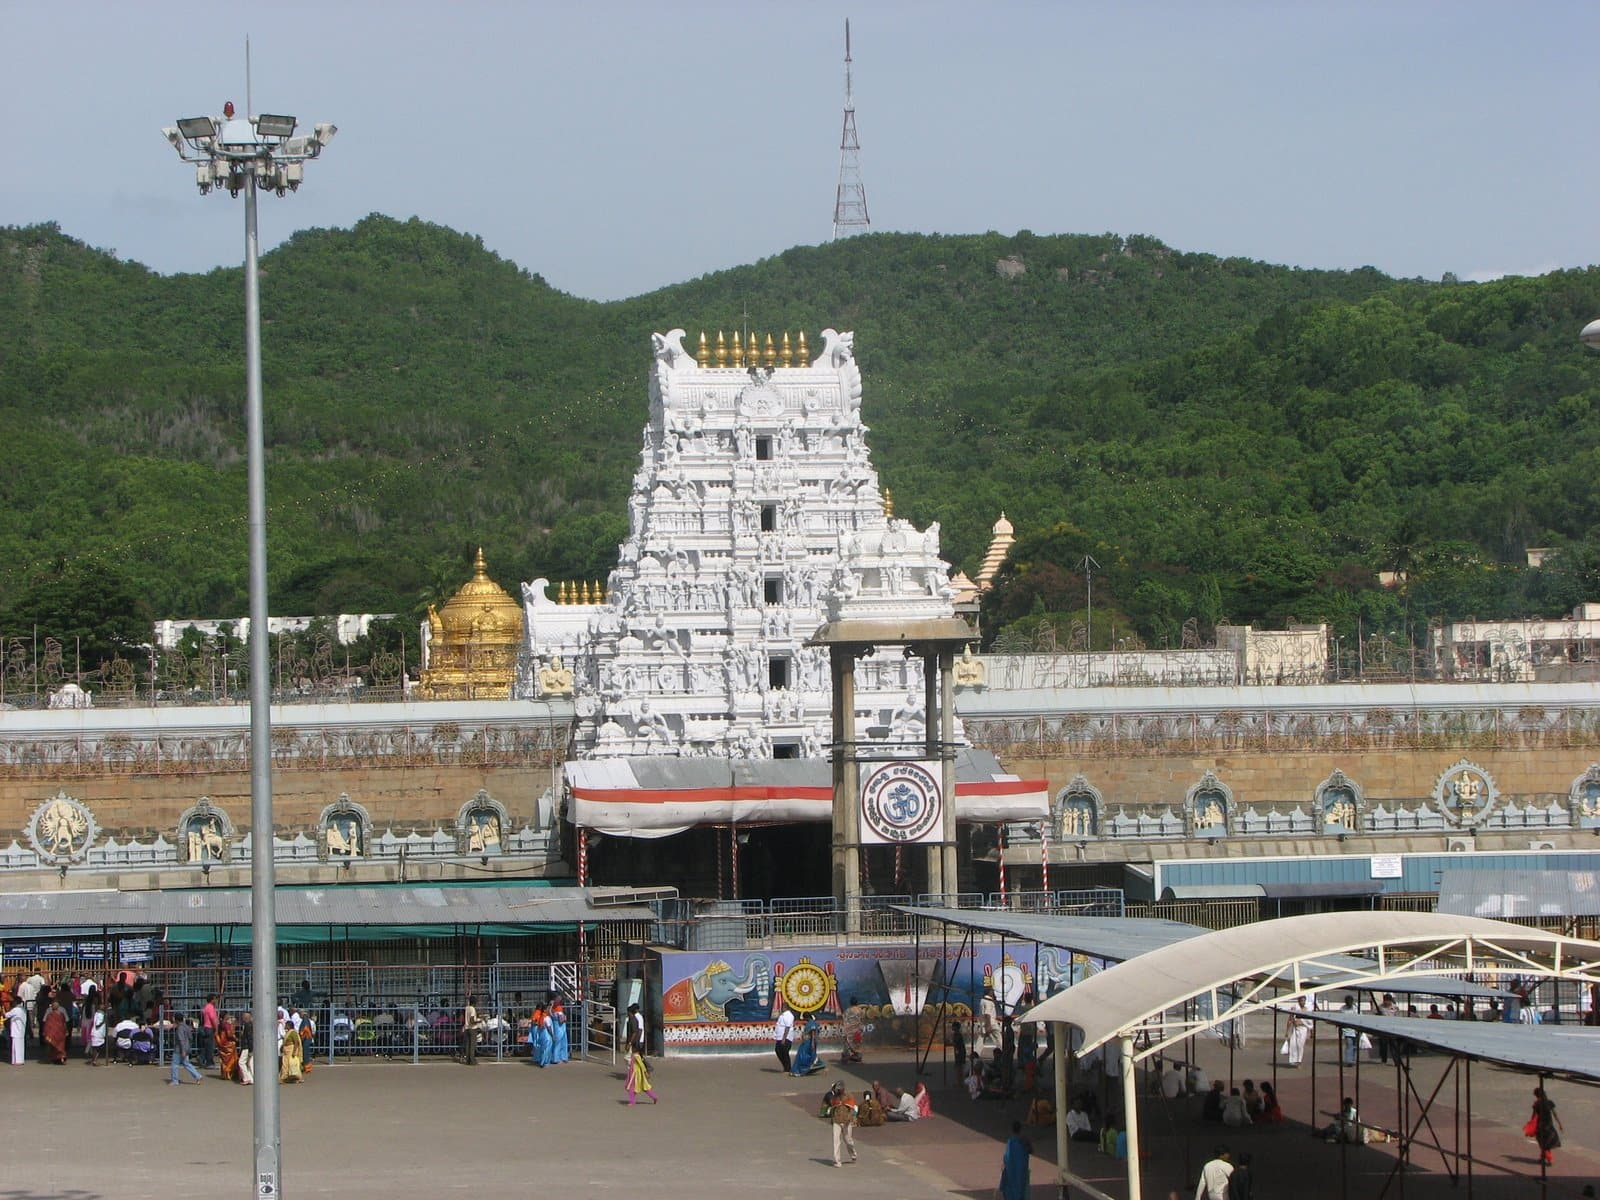 puttur man sues agent for changing bus seats reserved for tirupati trip